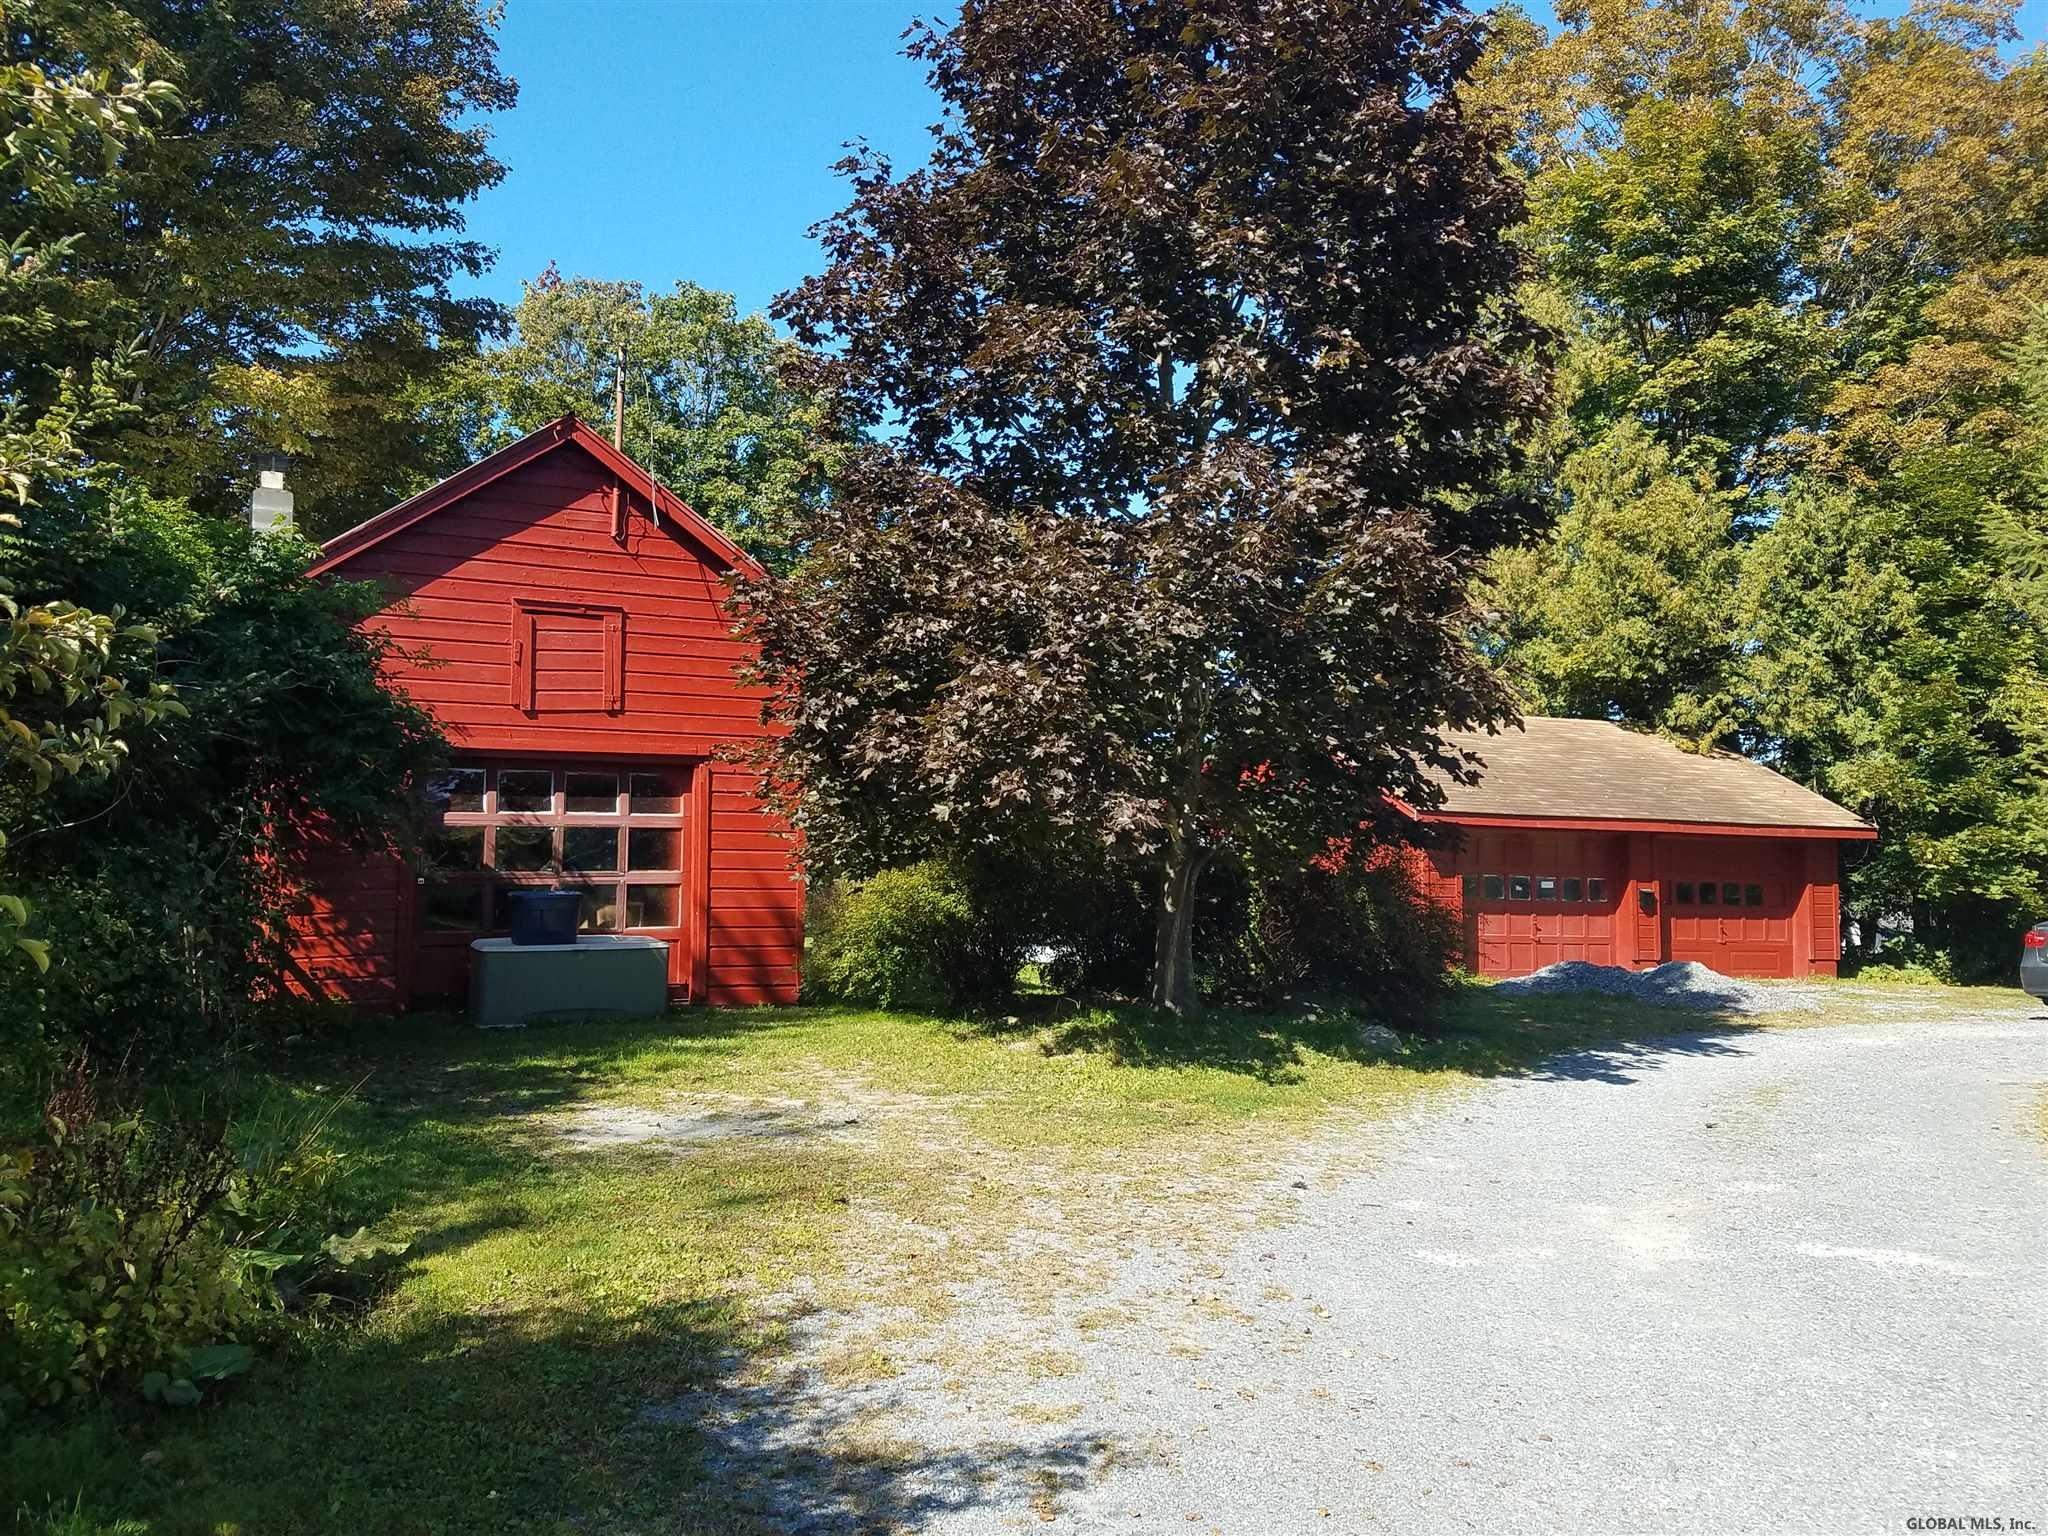 1267 PINE VALLEY RD in Hoosick Falls, NY Listed For ...